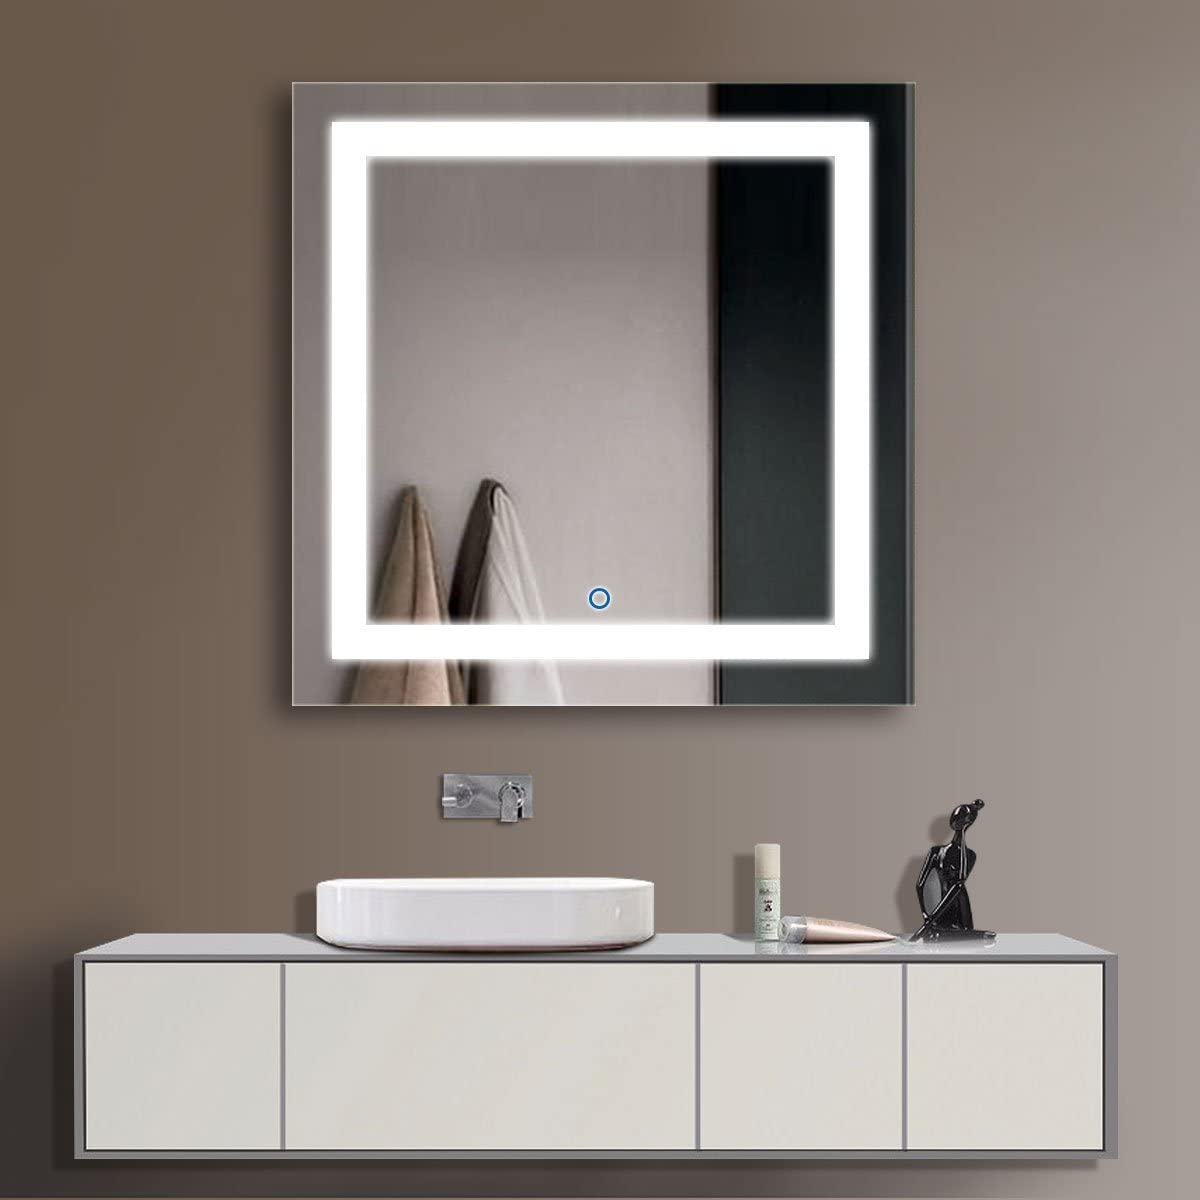 DECORAPORT 36 x 36 in LED Bathroom Silvered Mirror with Touch Button D-CK168-E